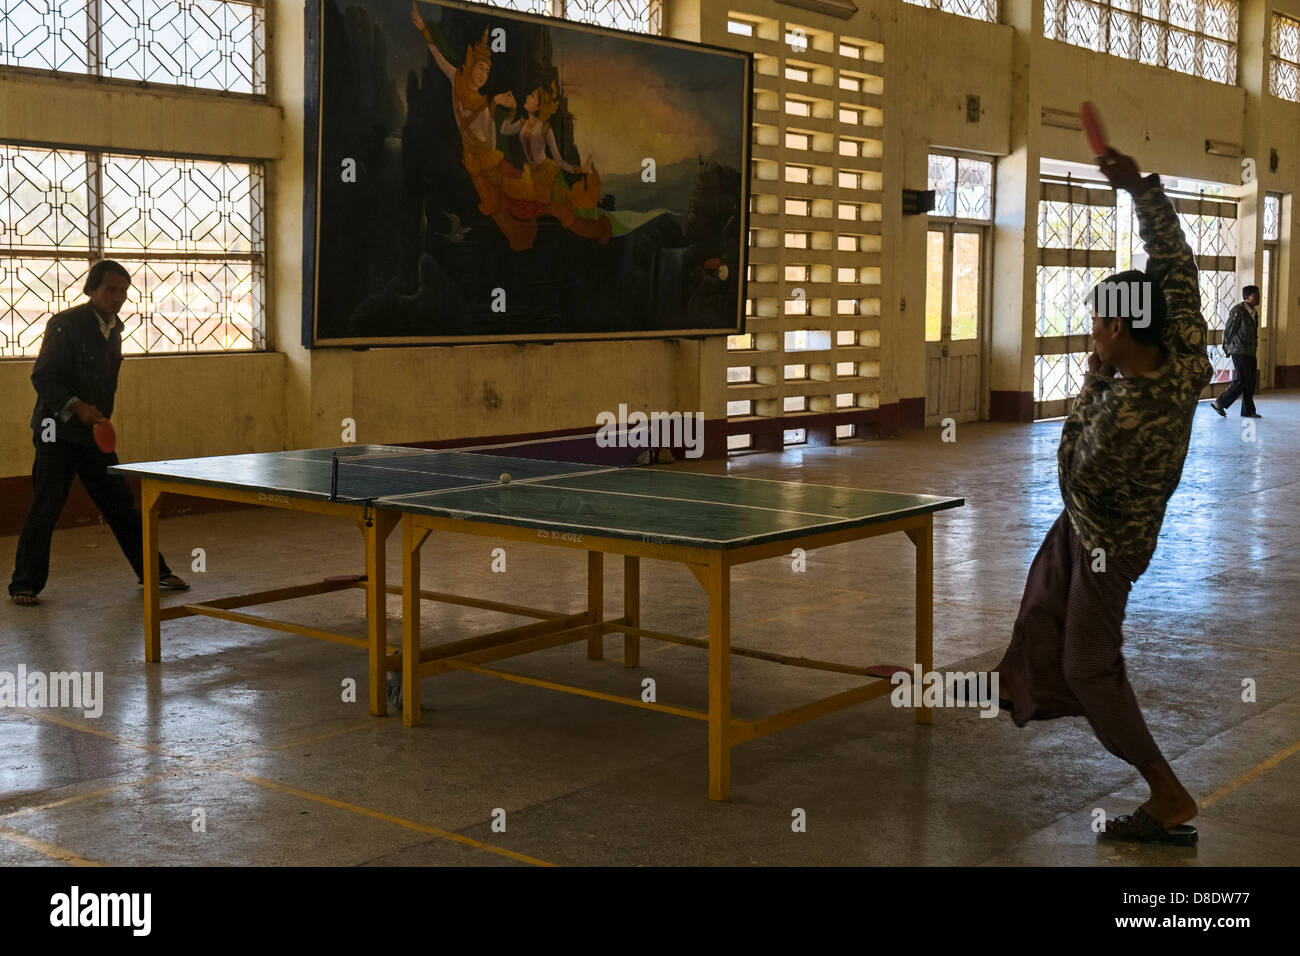 Table tennis player in railway station, Aungban, Myanmar, Asia - Stock Image